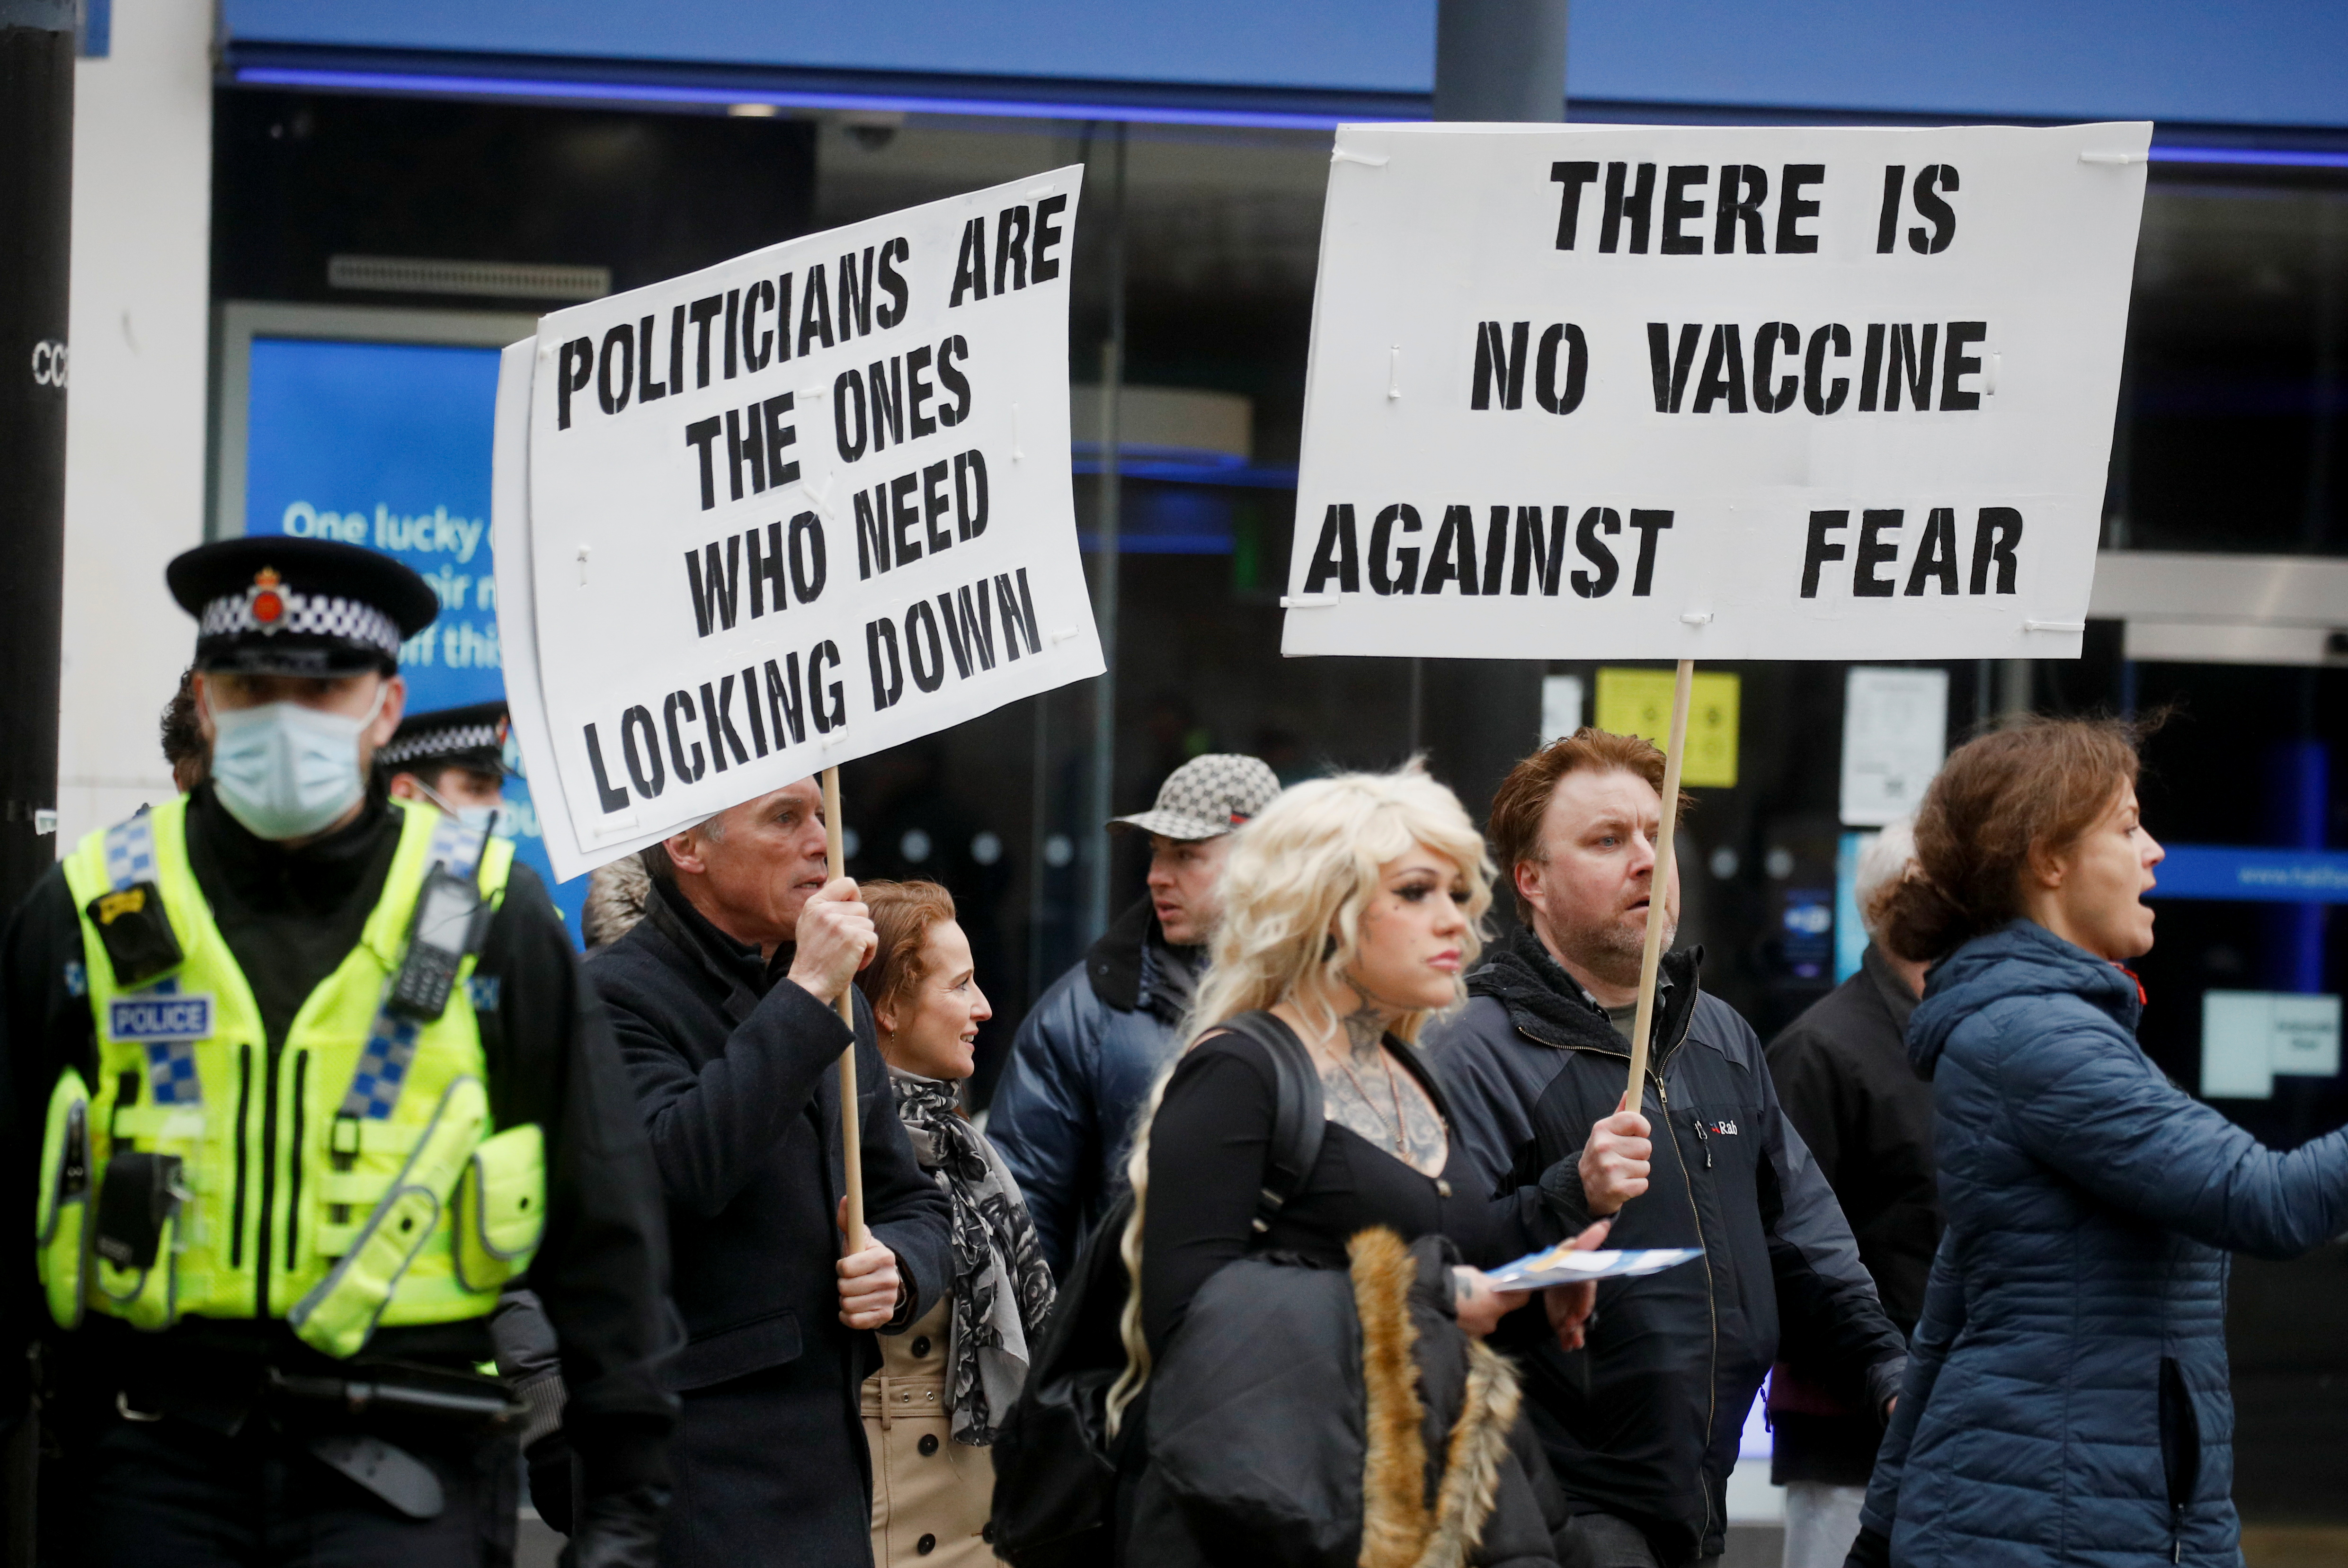 People participate in a protest against the lockdown, amid the spread of the coronavirus disease (COVID-19), in Manchester, Britain March 20, 2021. REUTERS/Phil Noble